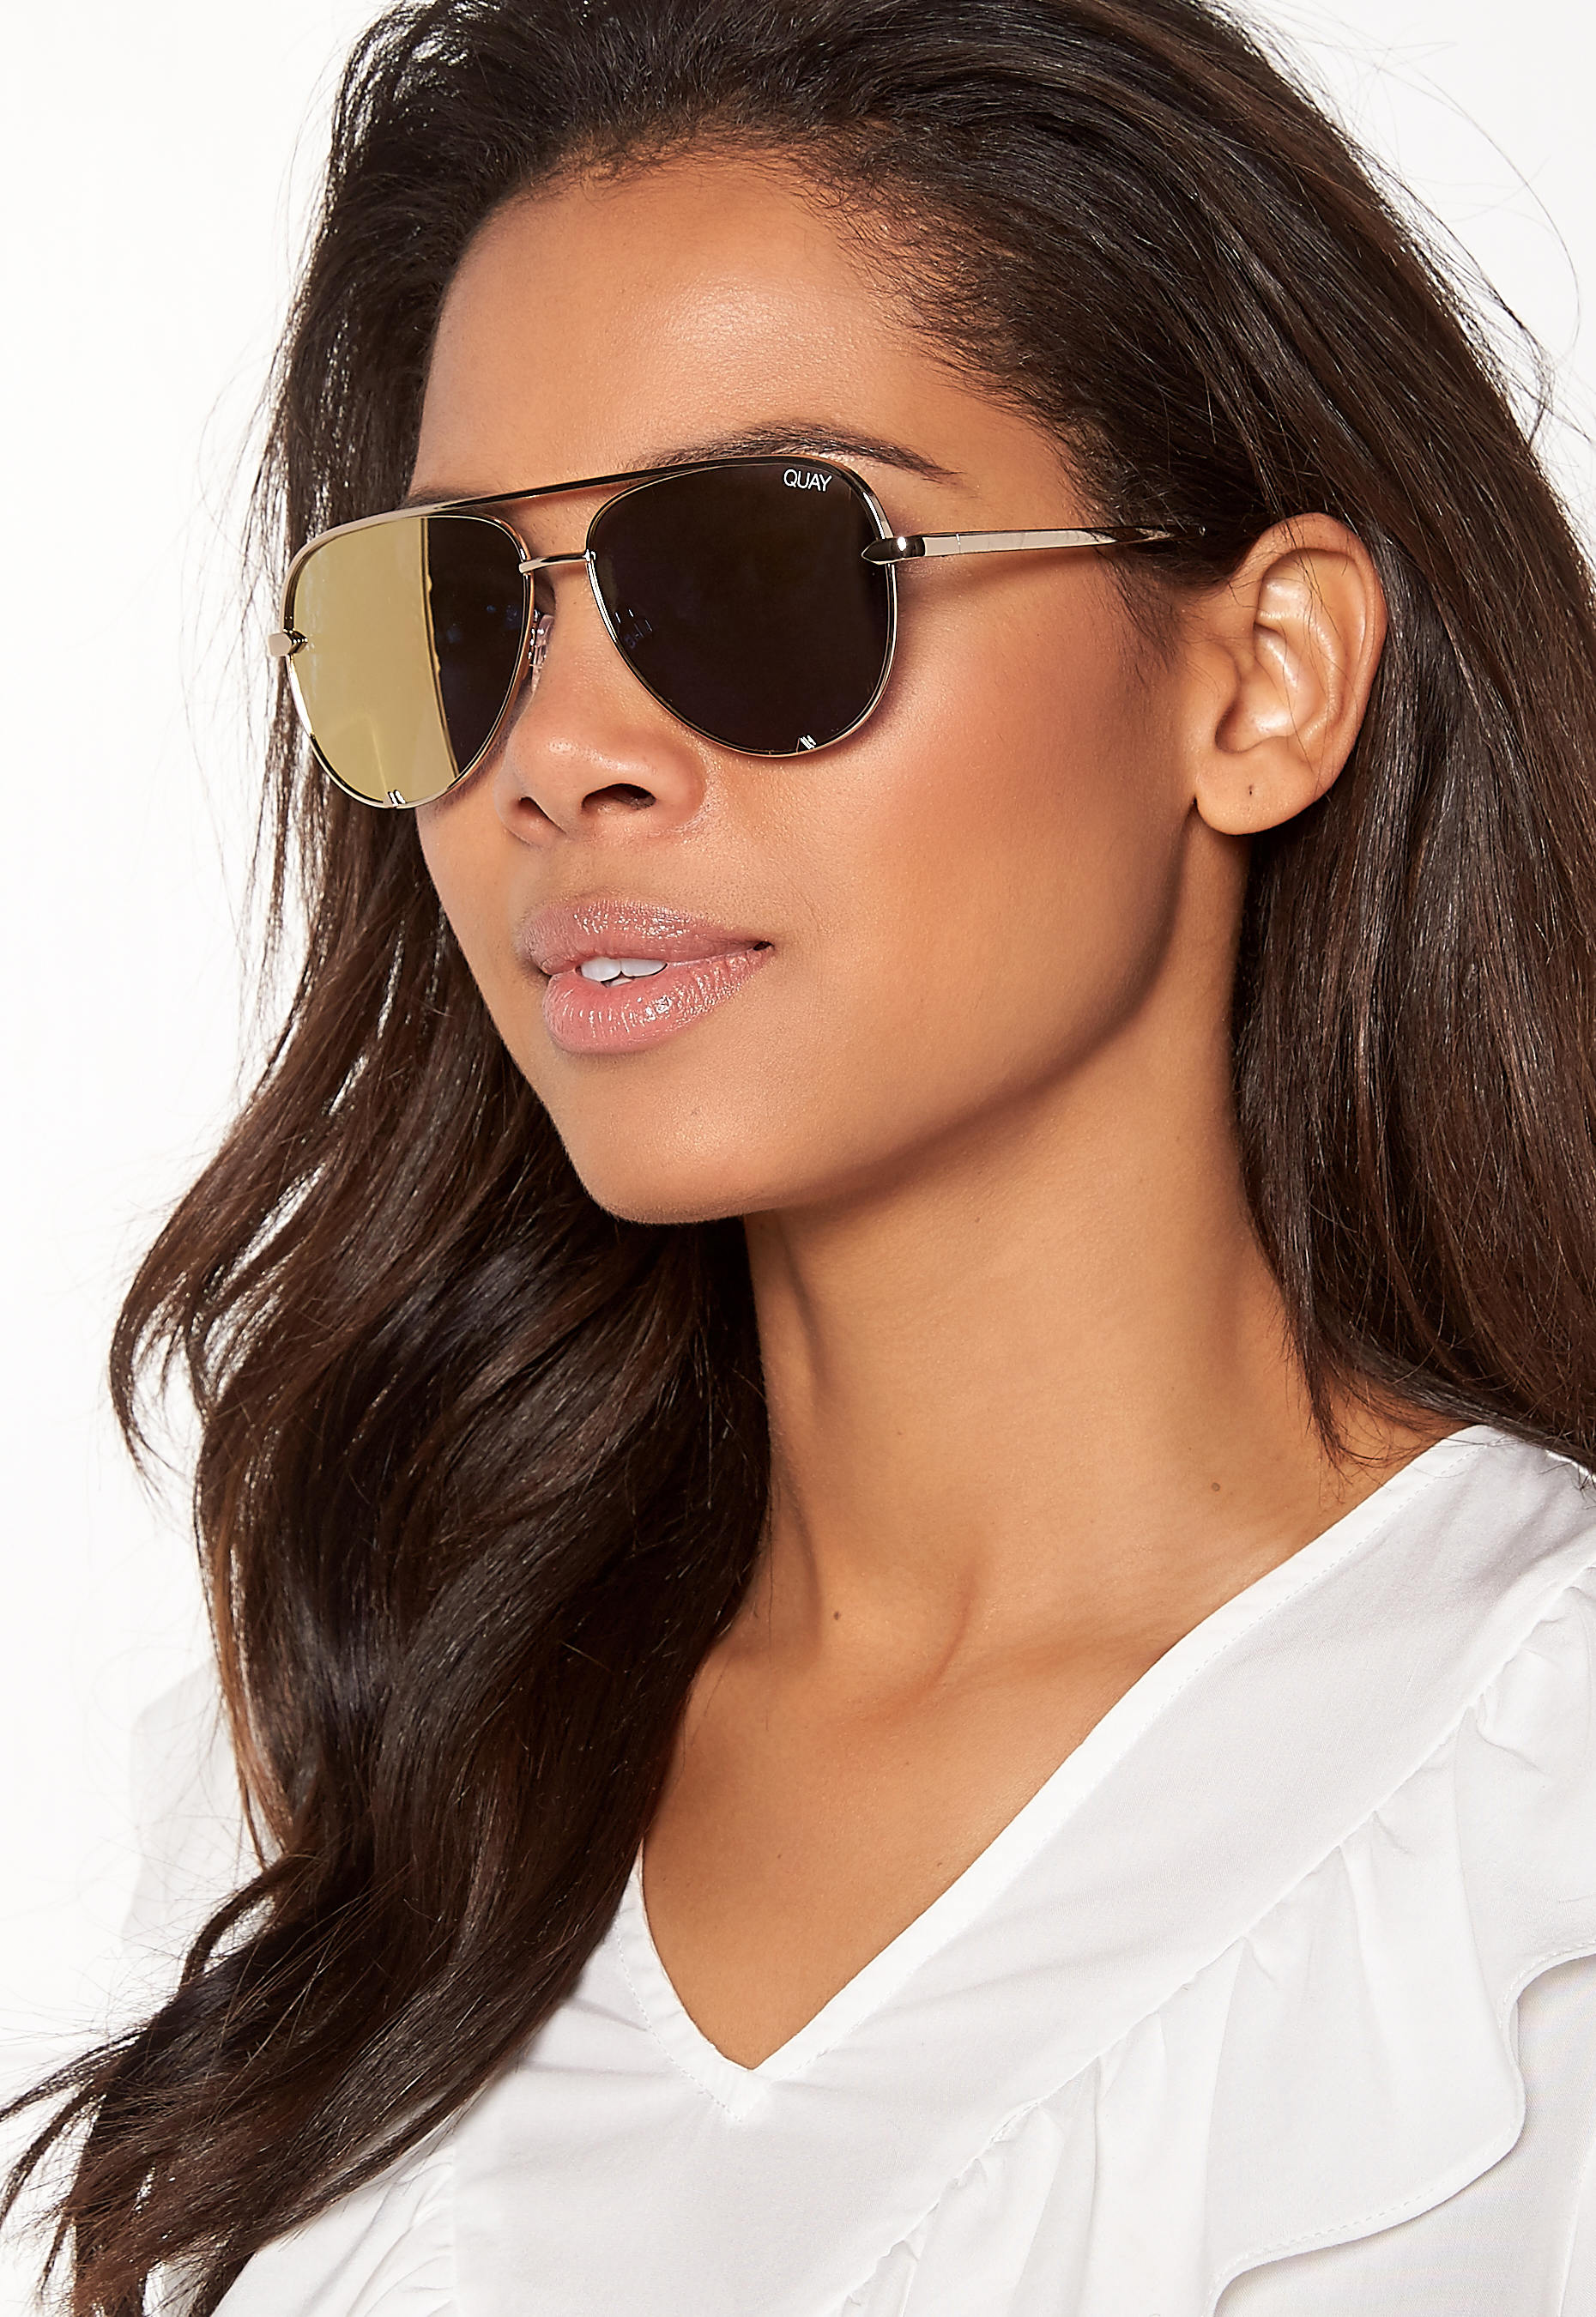 bddfb15712 Quay Australia High Key Mini Sunglasses Gold Gold Mirror - Bubbleroom